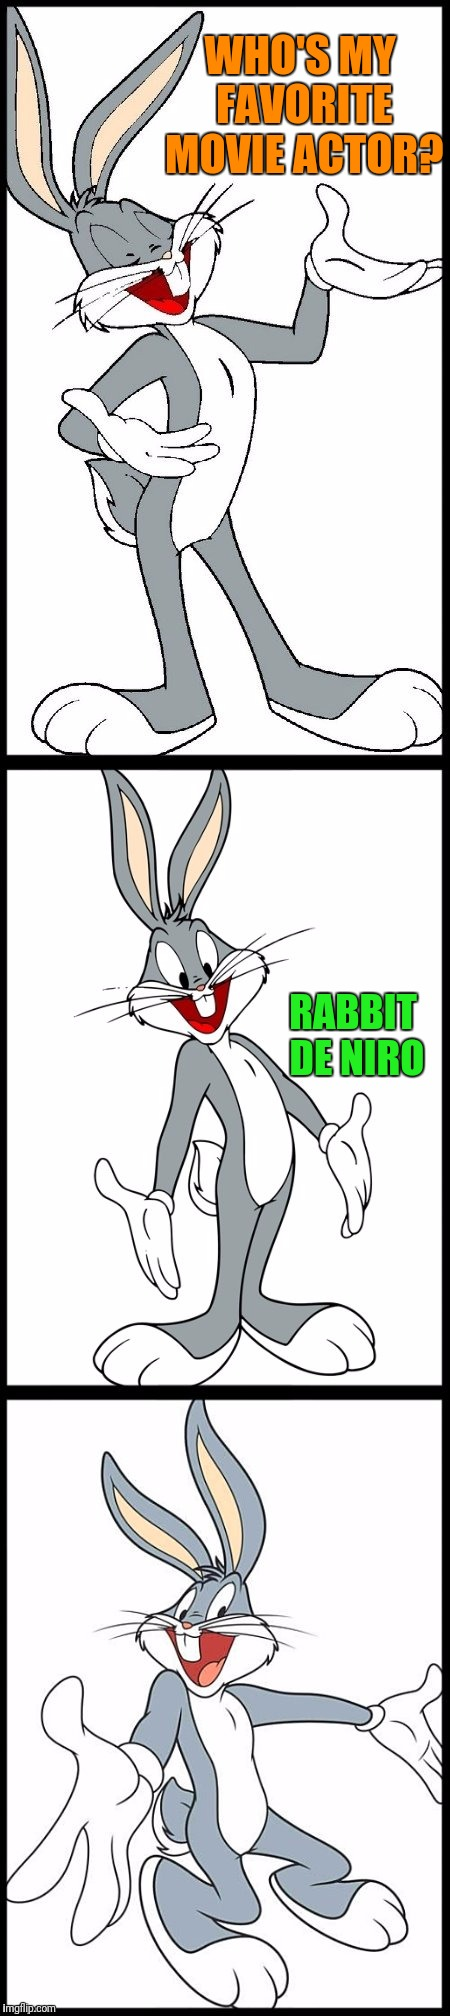 Bugs Bunny Favorite Actor! (Cartoon Week) (A Juicydeath1025 Event) | WHO'S MY FAVORITE MOVIE ACTOR? RABBIT DE NIRO | image tagged in bad bugs bunny pun,cartoon week,juicydeath1025,bugs bunny,google images | made w/ Imgflip meme maker